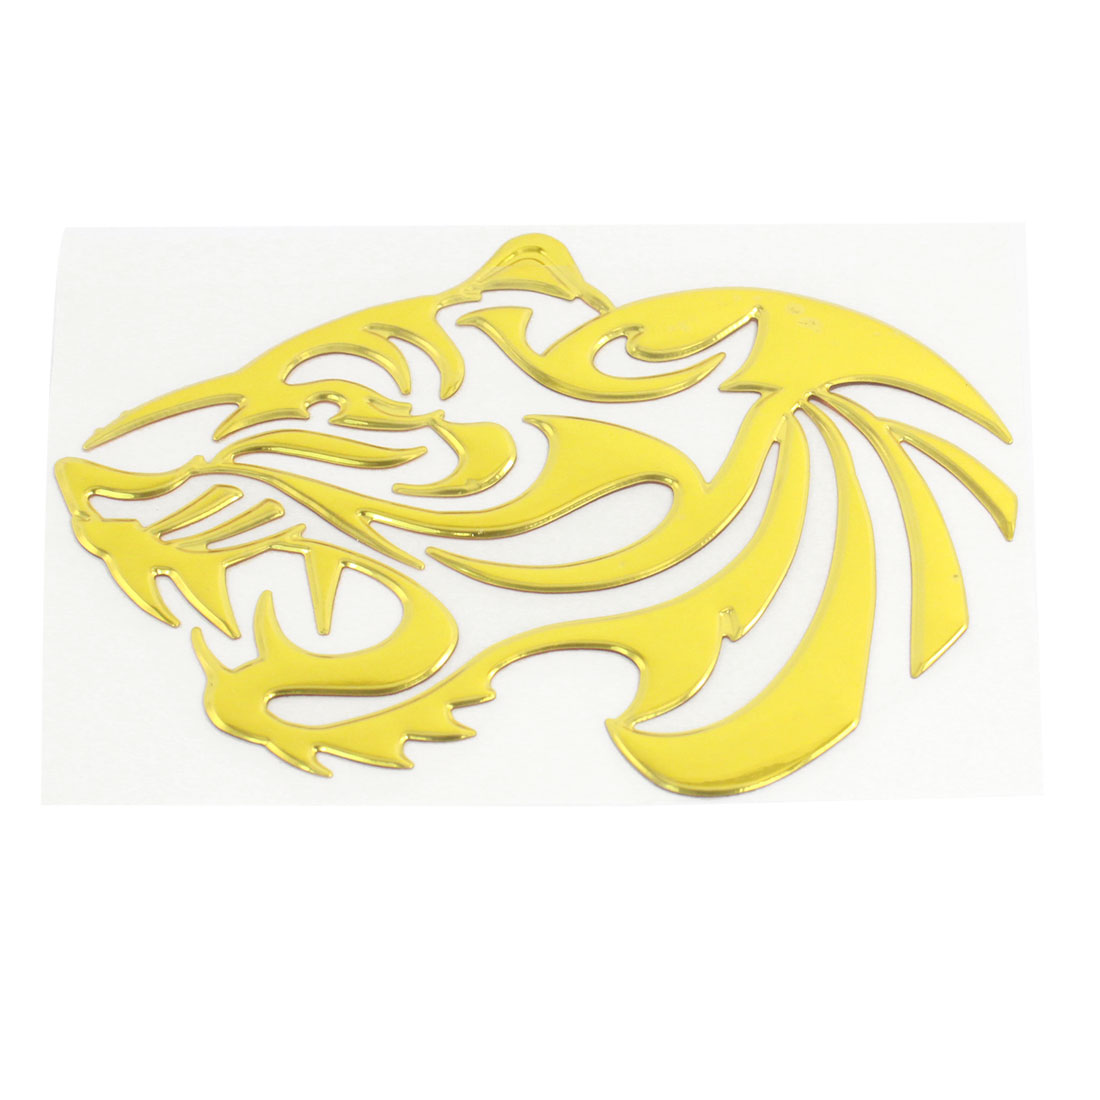 Silver Tone Tiger Print Plastic Self Adhesive 3D Sticker Decal for Car Furniture